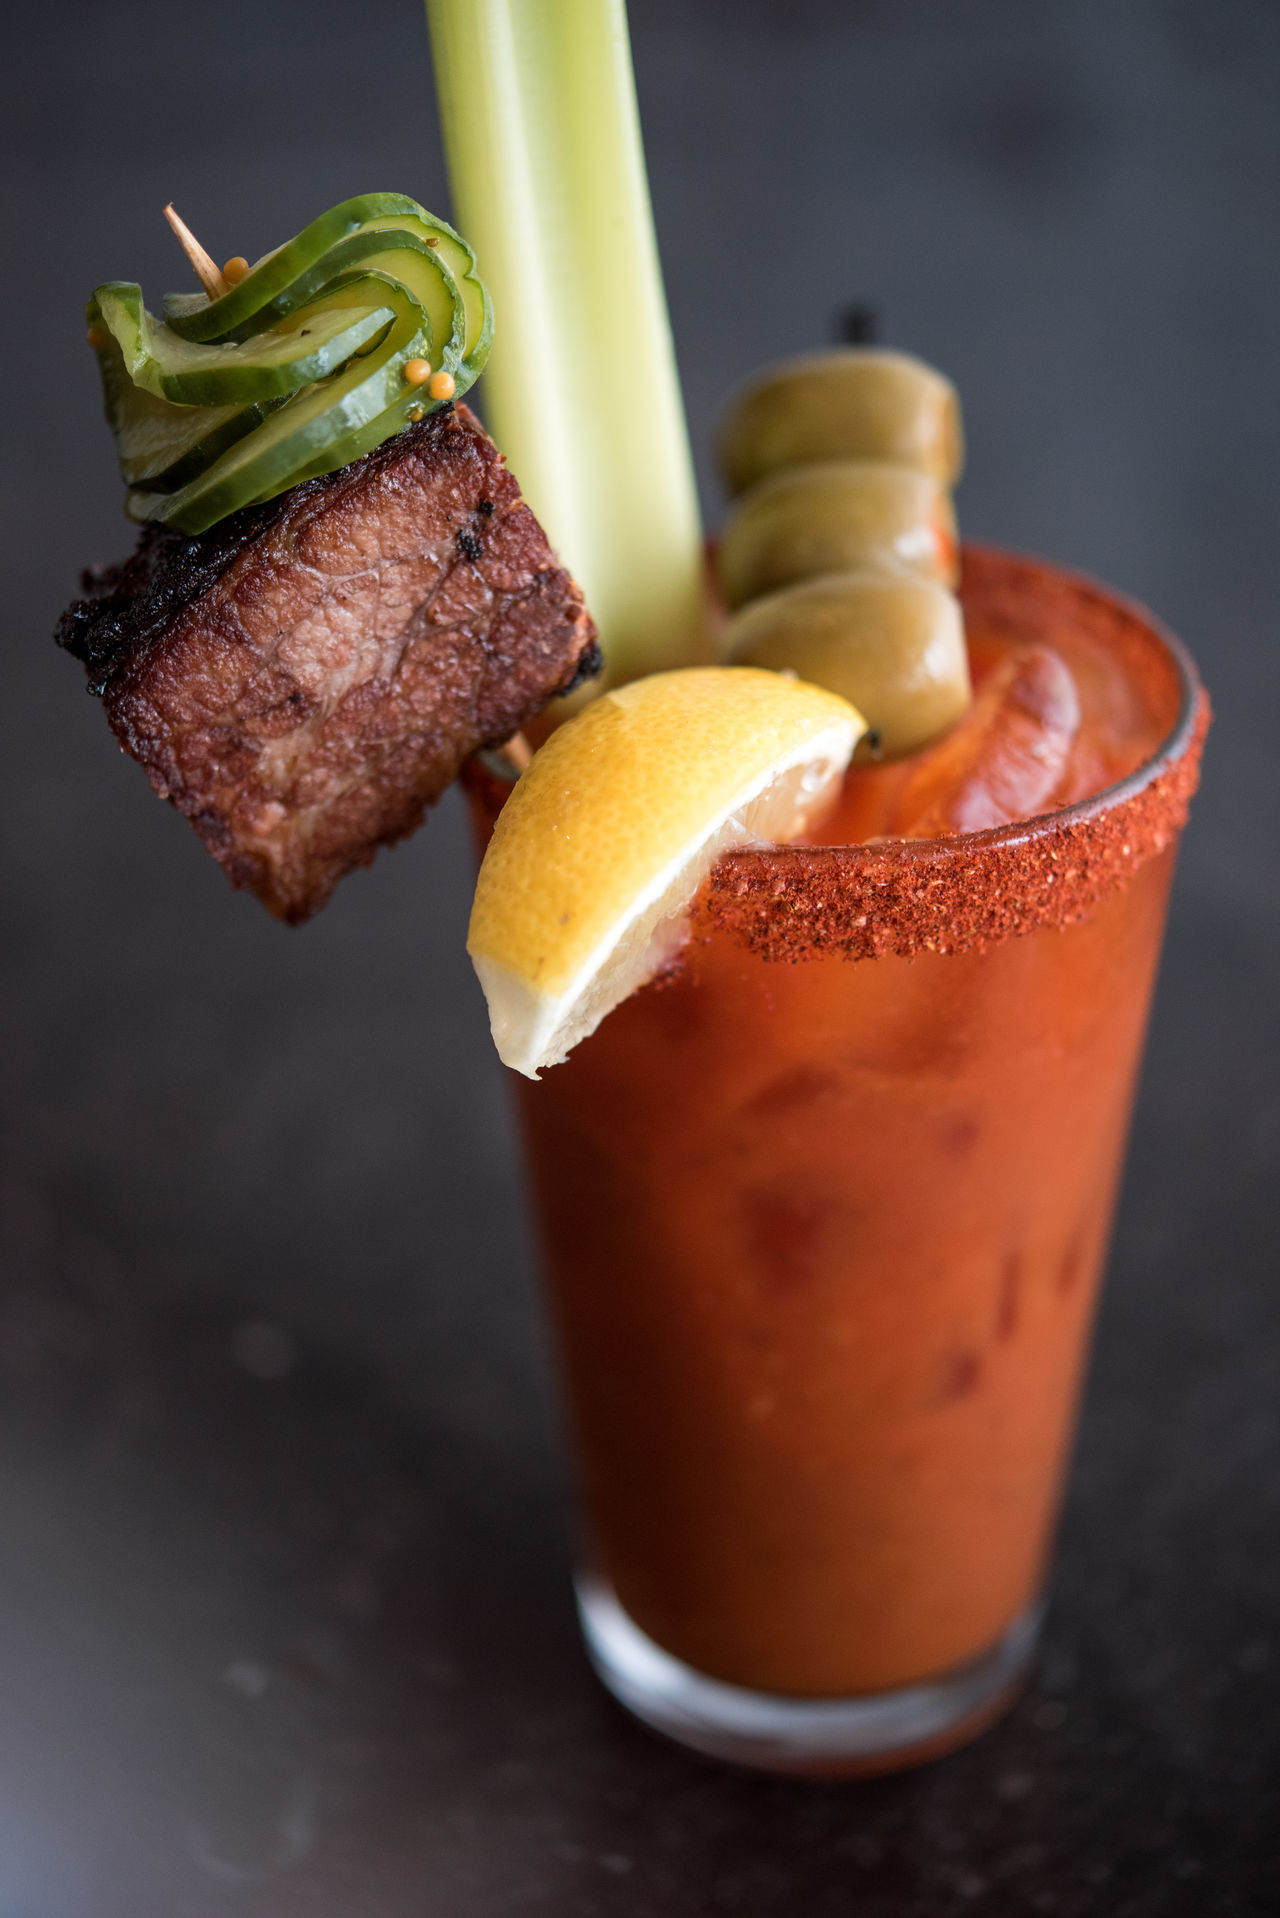 Beautiful stock photos of bloody mary, food and drink, close-up, food, freshness